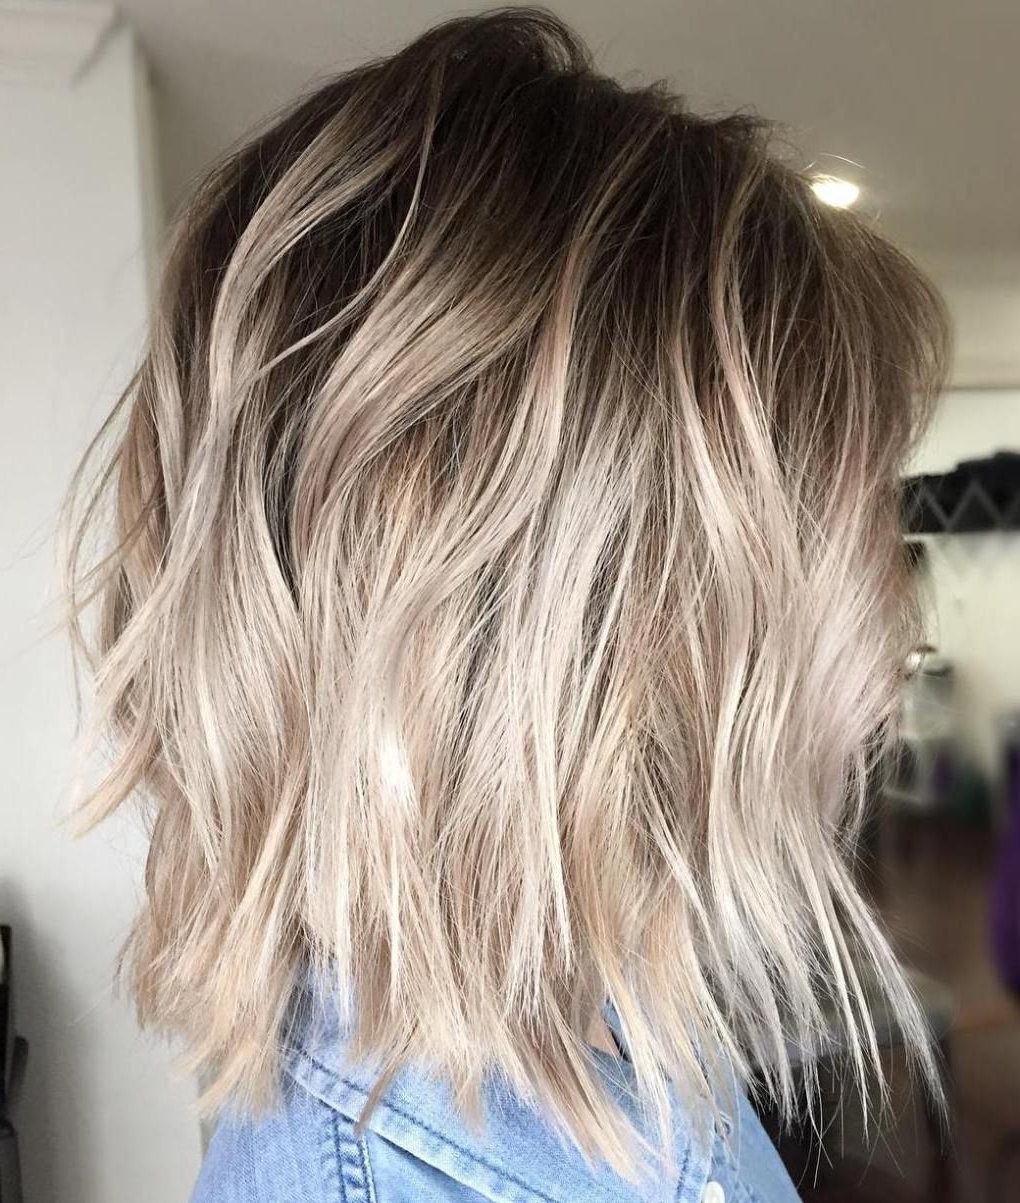 40 Beautiful Blonde Balayage Looks In 2018 | Hair | Pinterest | Hair Regarding Short Ash Blonde Bob Hairstyles With Feathered Bangs (View 17 of 20)